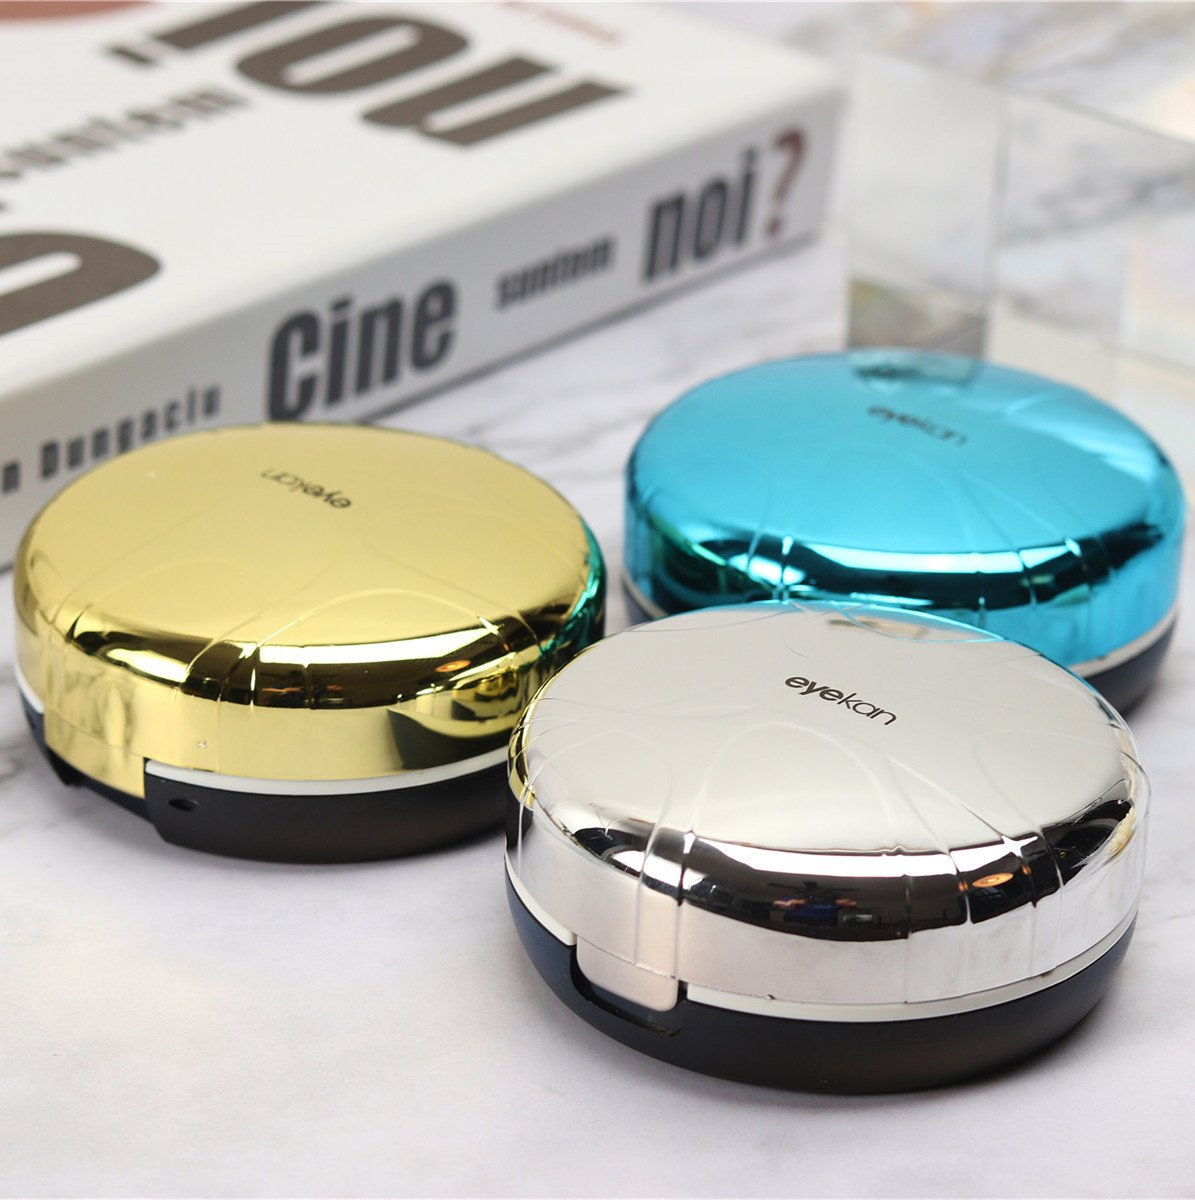 Contact lens case cleaner / frog ultrasonic contact lens cleaner(Contains tweezers and suction stick)